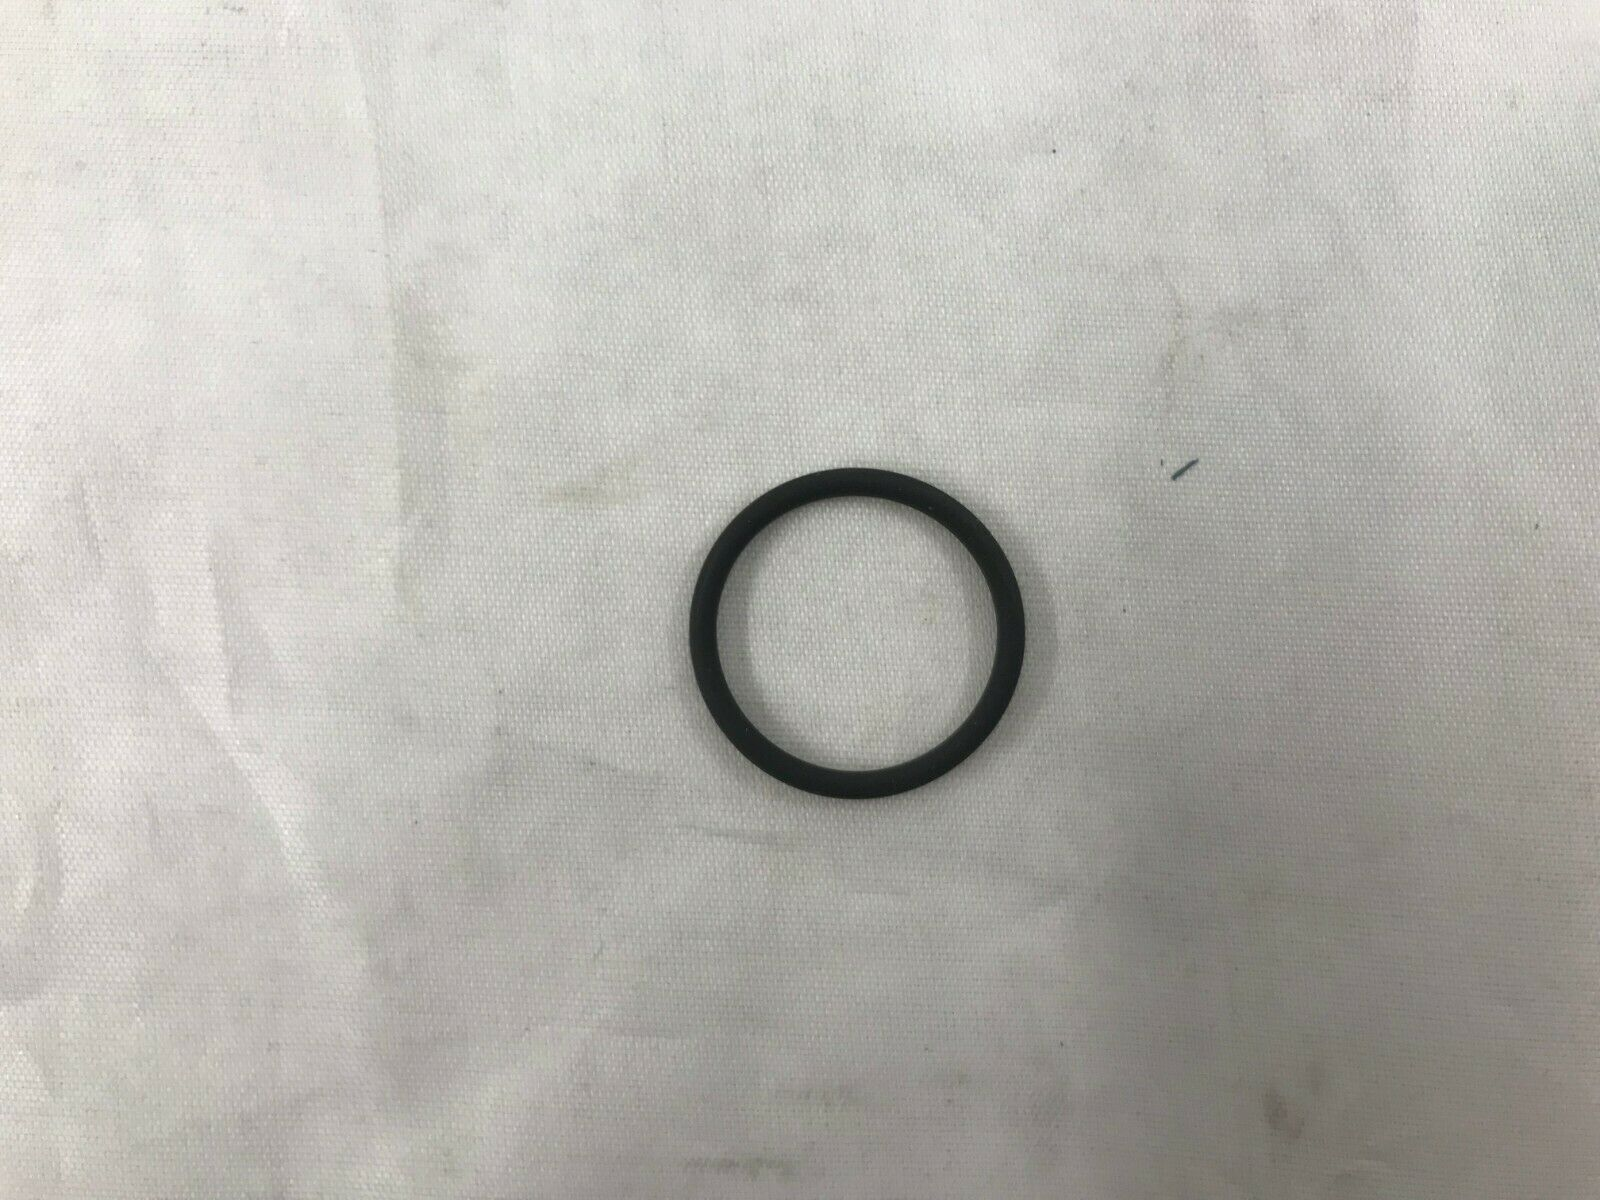 Round 75A Shore Durometer Pack of 25 10.5 mm OD M1.5x7.5 Viton O-Ring Black 7.5 mm ID 1.5 mm Width